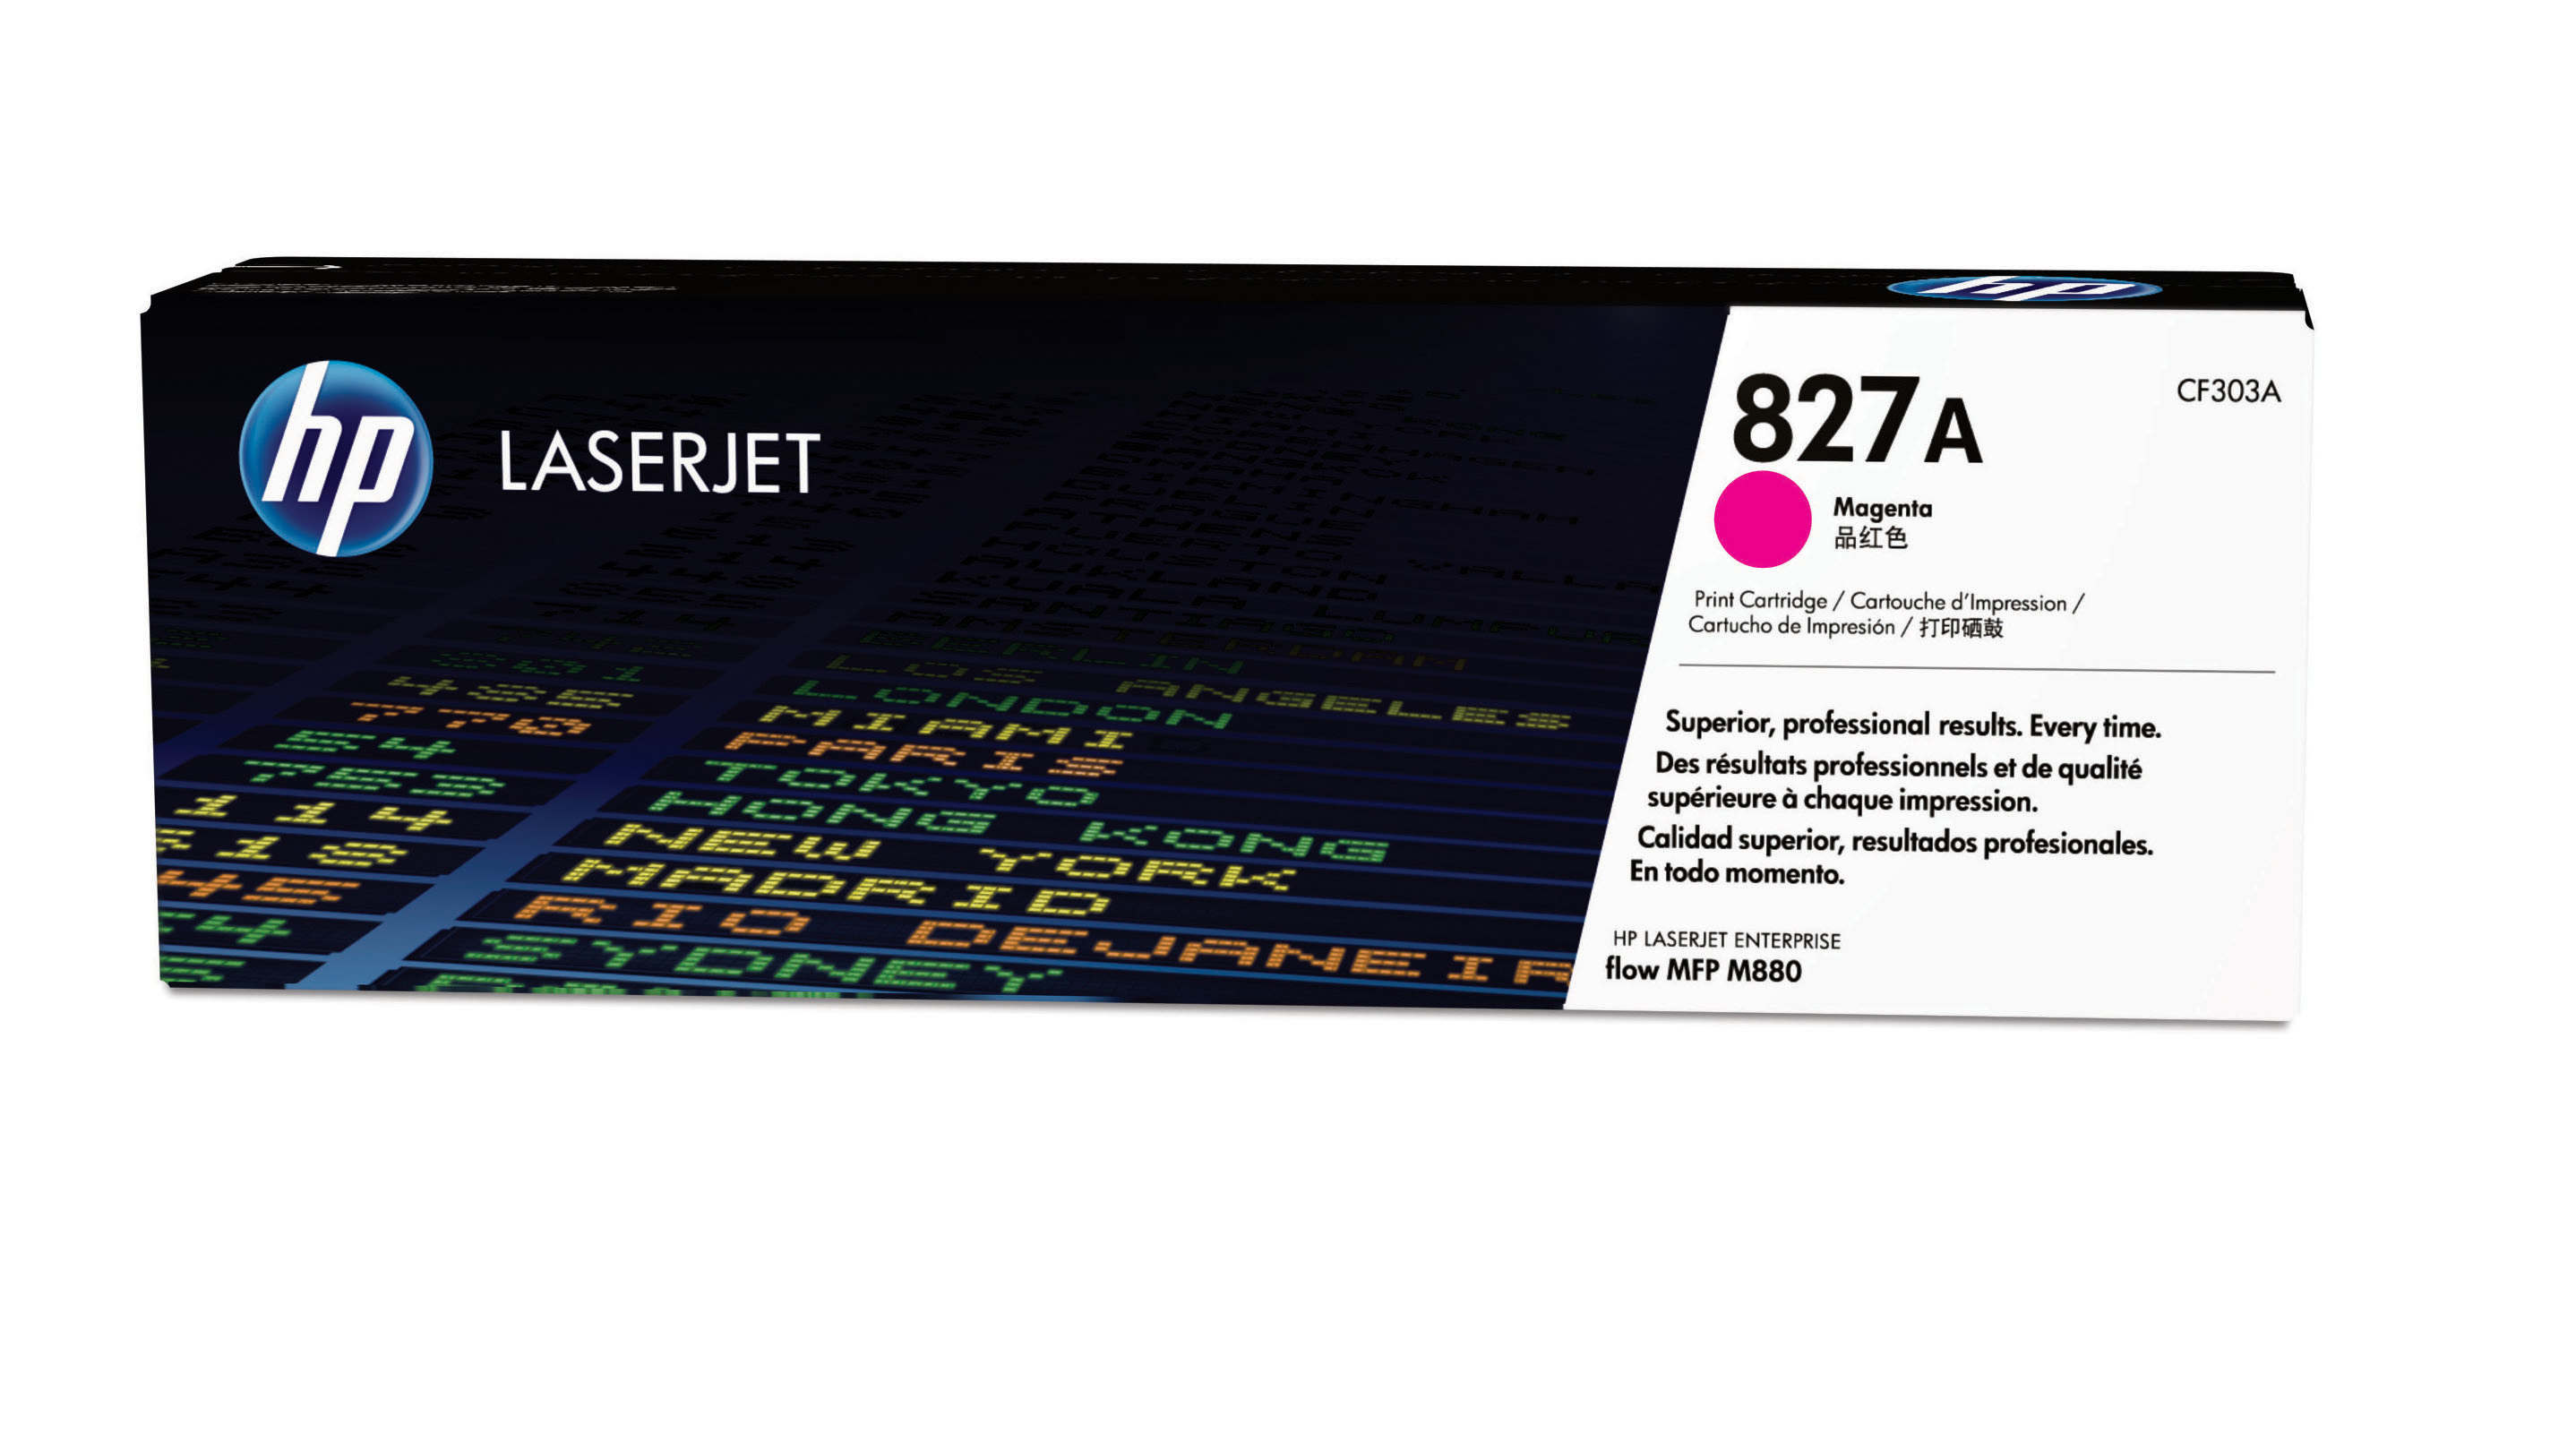 HP 827A Magenta Toner Cartridge CF303A